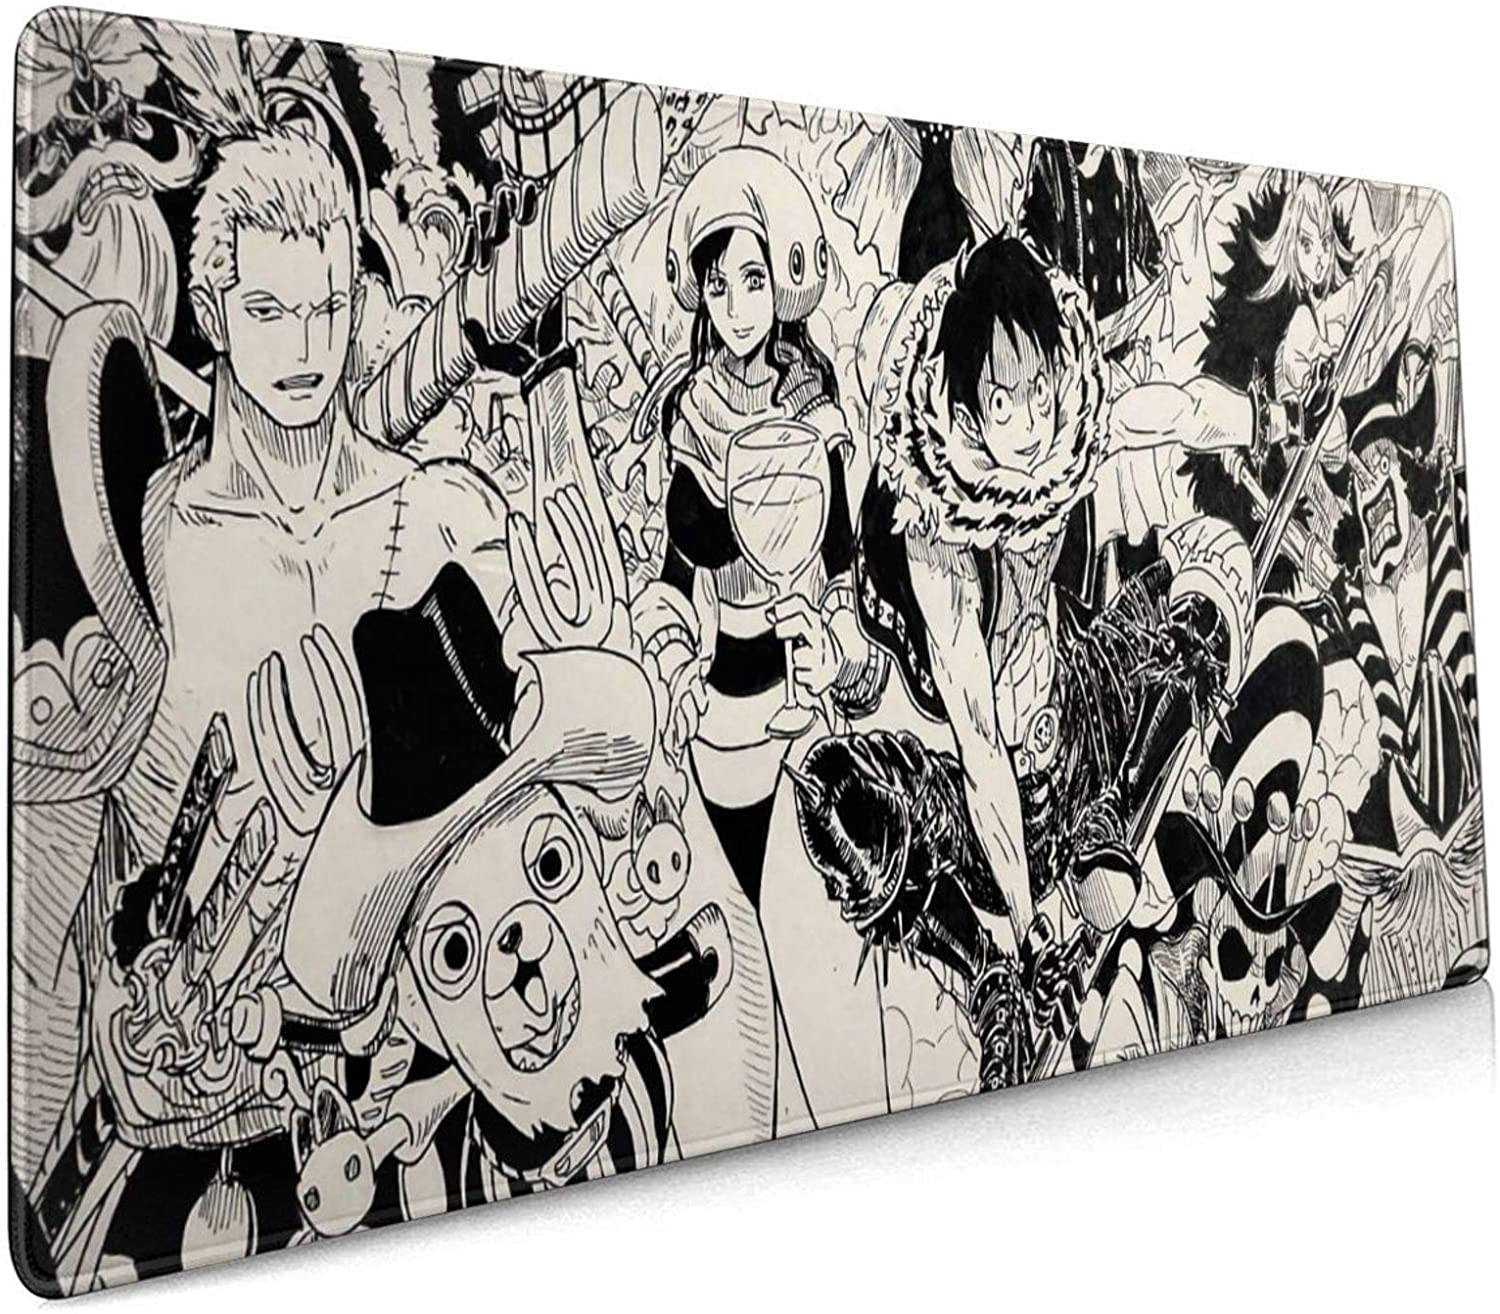 One Piece 35.5x15.8 Inch Large Gaming Mouse Pad One Piece Extended Mat Desk Pad Non-Slip Water-Resistant Rubber Mice Pads Anime Mouse Mat